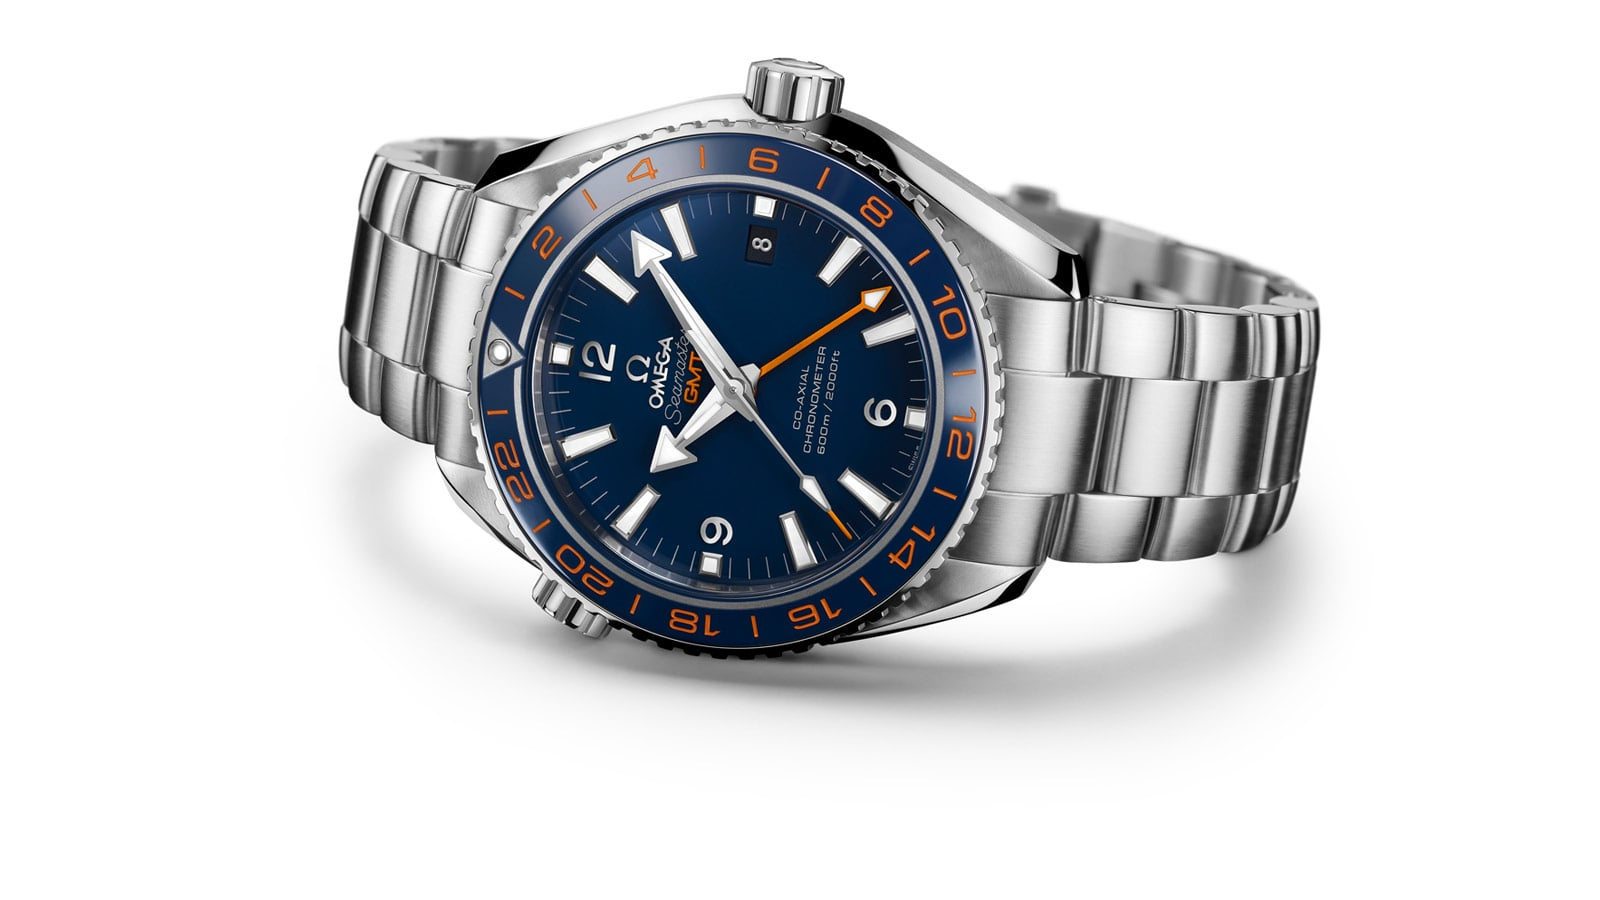 omega Seamaster Planet Ocean 600 M GoodPlanet with dark blue face